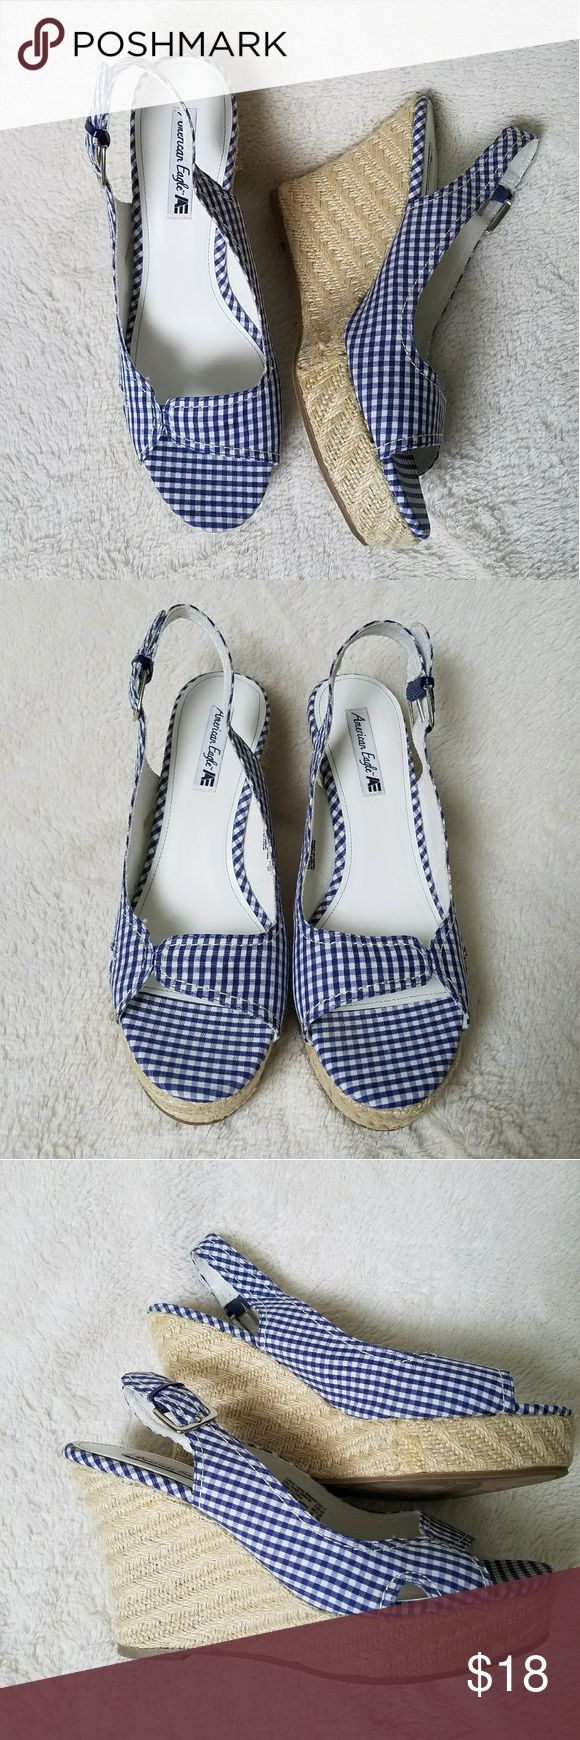 """NWOB Plaid Espadrille Wedge Sandals Brand new! Only ever tried on. Blue and White Plaid Espadrille Wedge Sandals from American Eagle by Payless. 4.5"""" heel. American Eagle by Payless Shoes Espadrilles"""